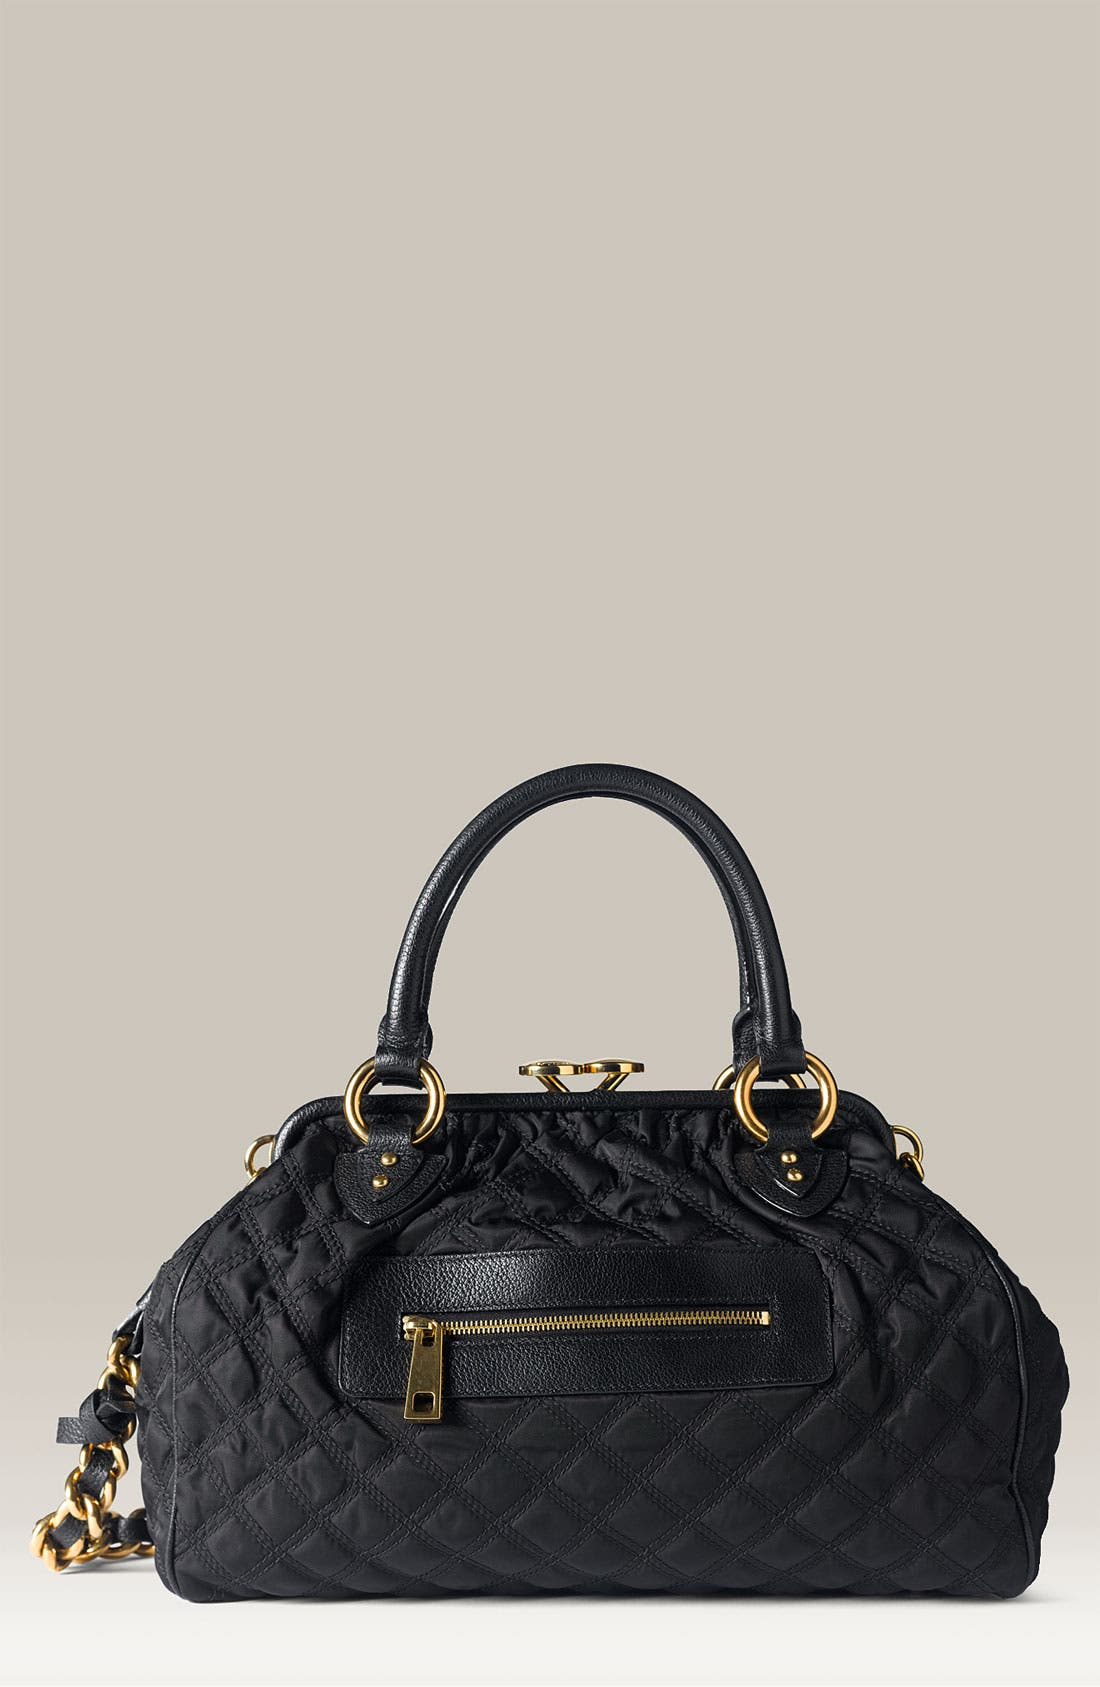 Main Image - MARC JACOBS 'Stam' Quilted Nylon Satchel